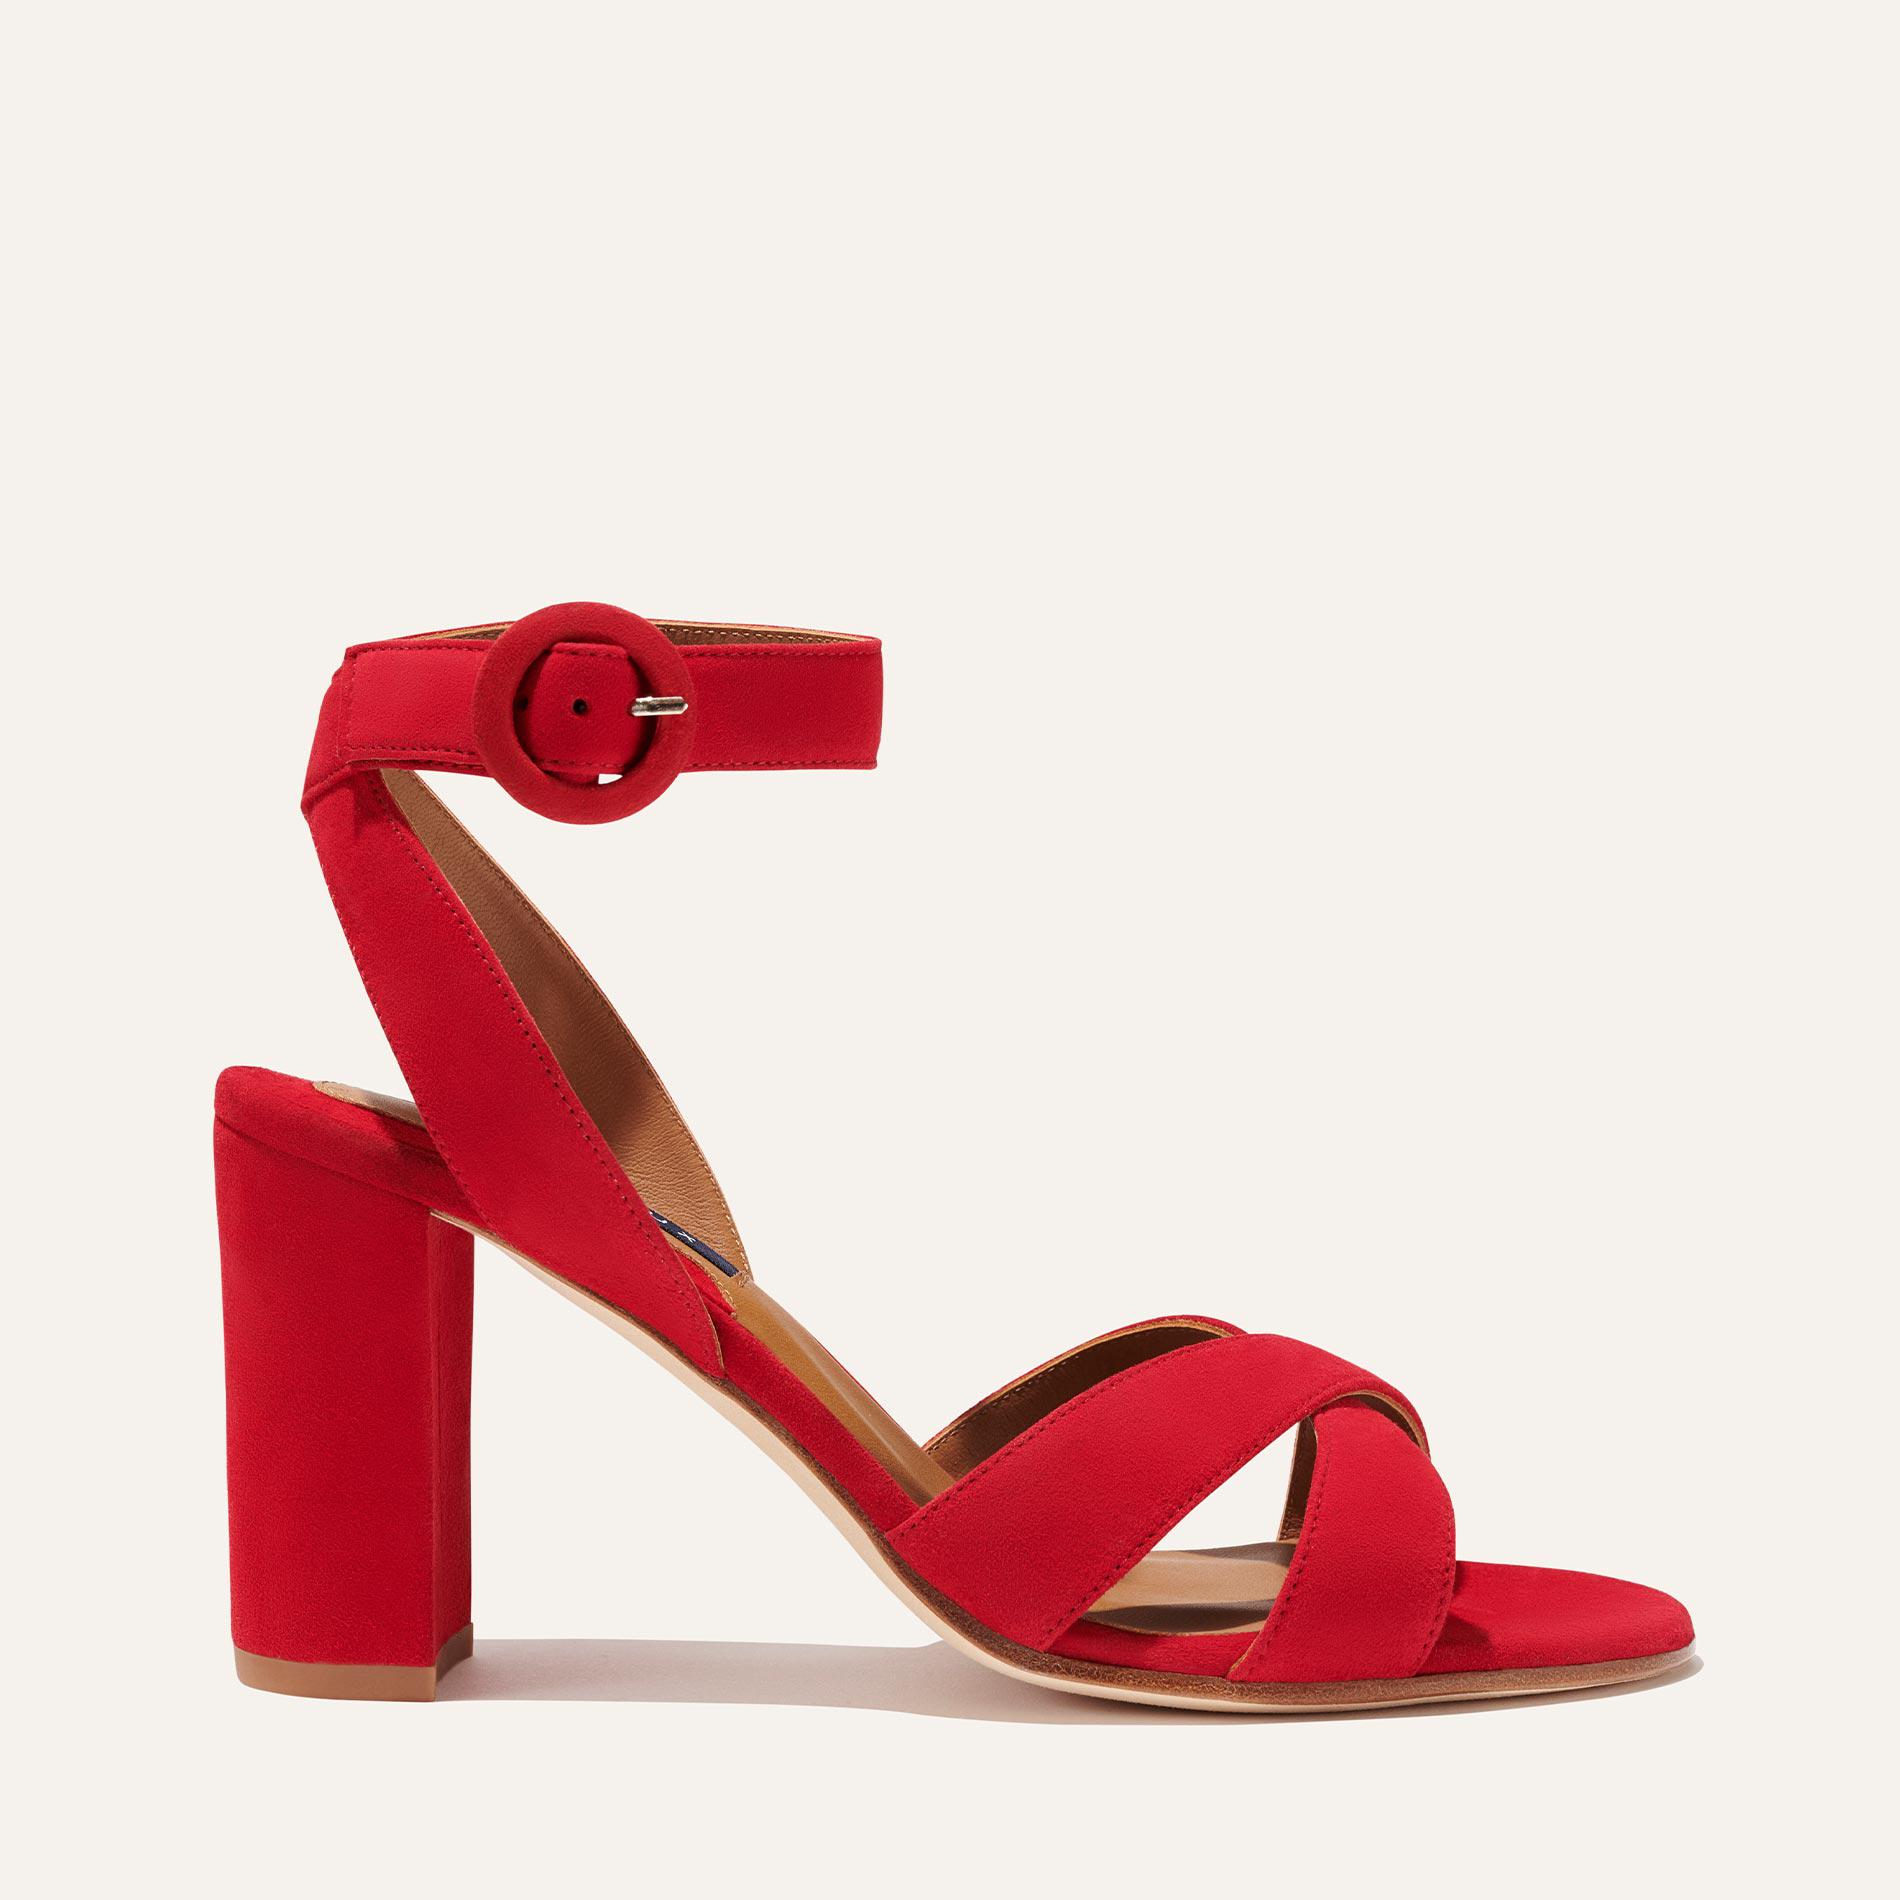 The Uptown Sandal - Poppy Suede